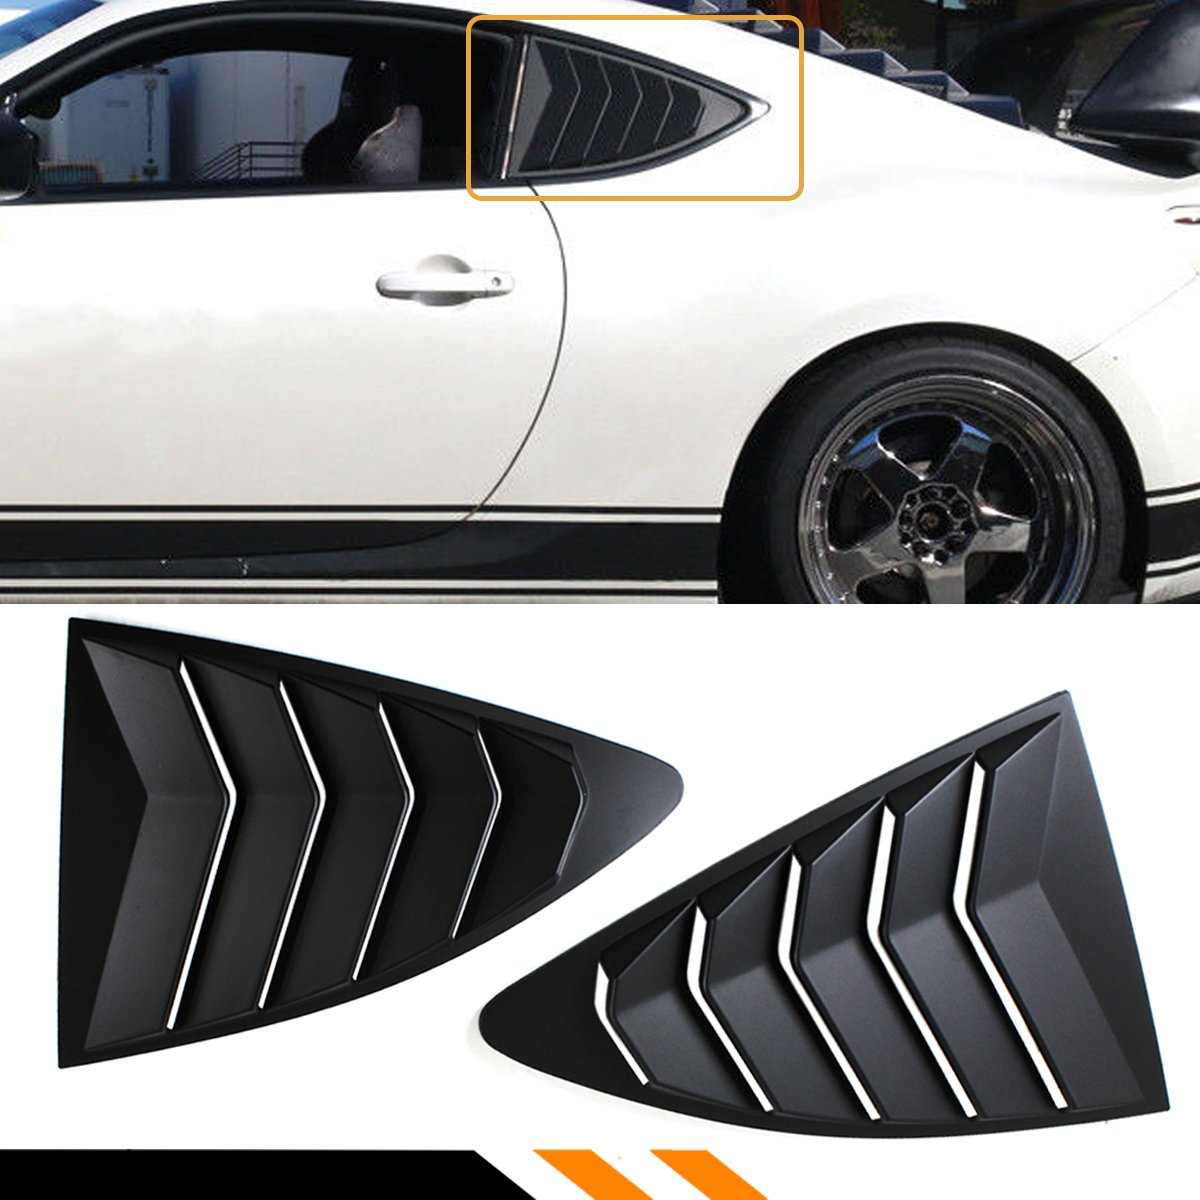 Cuztom Tuning For 2013-2017 Scion FR-S/Toyota 86 & Subaru BRZ ABS 1/4 Quarter Panel Side Vent Window Louver Covers